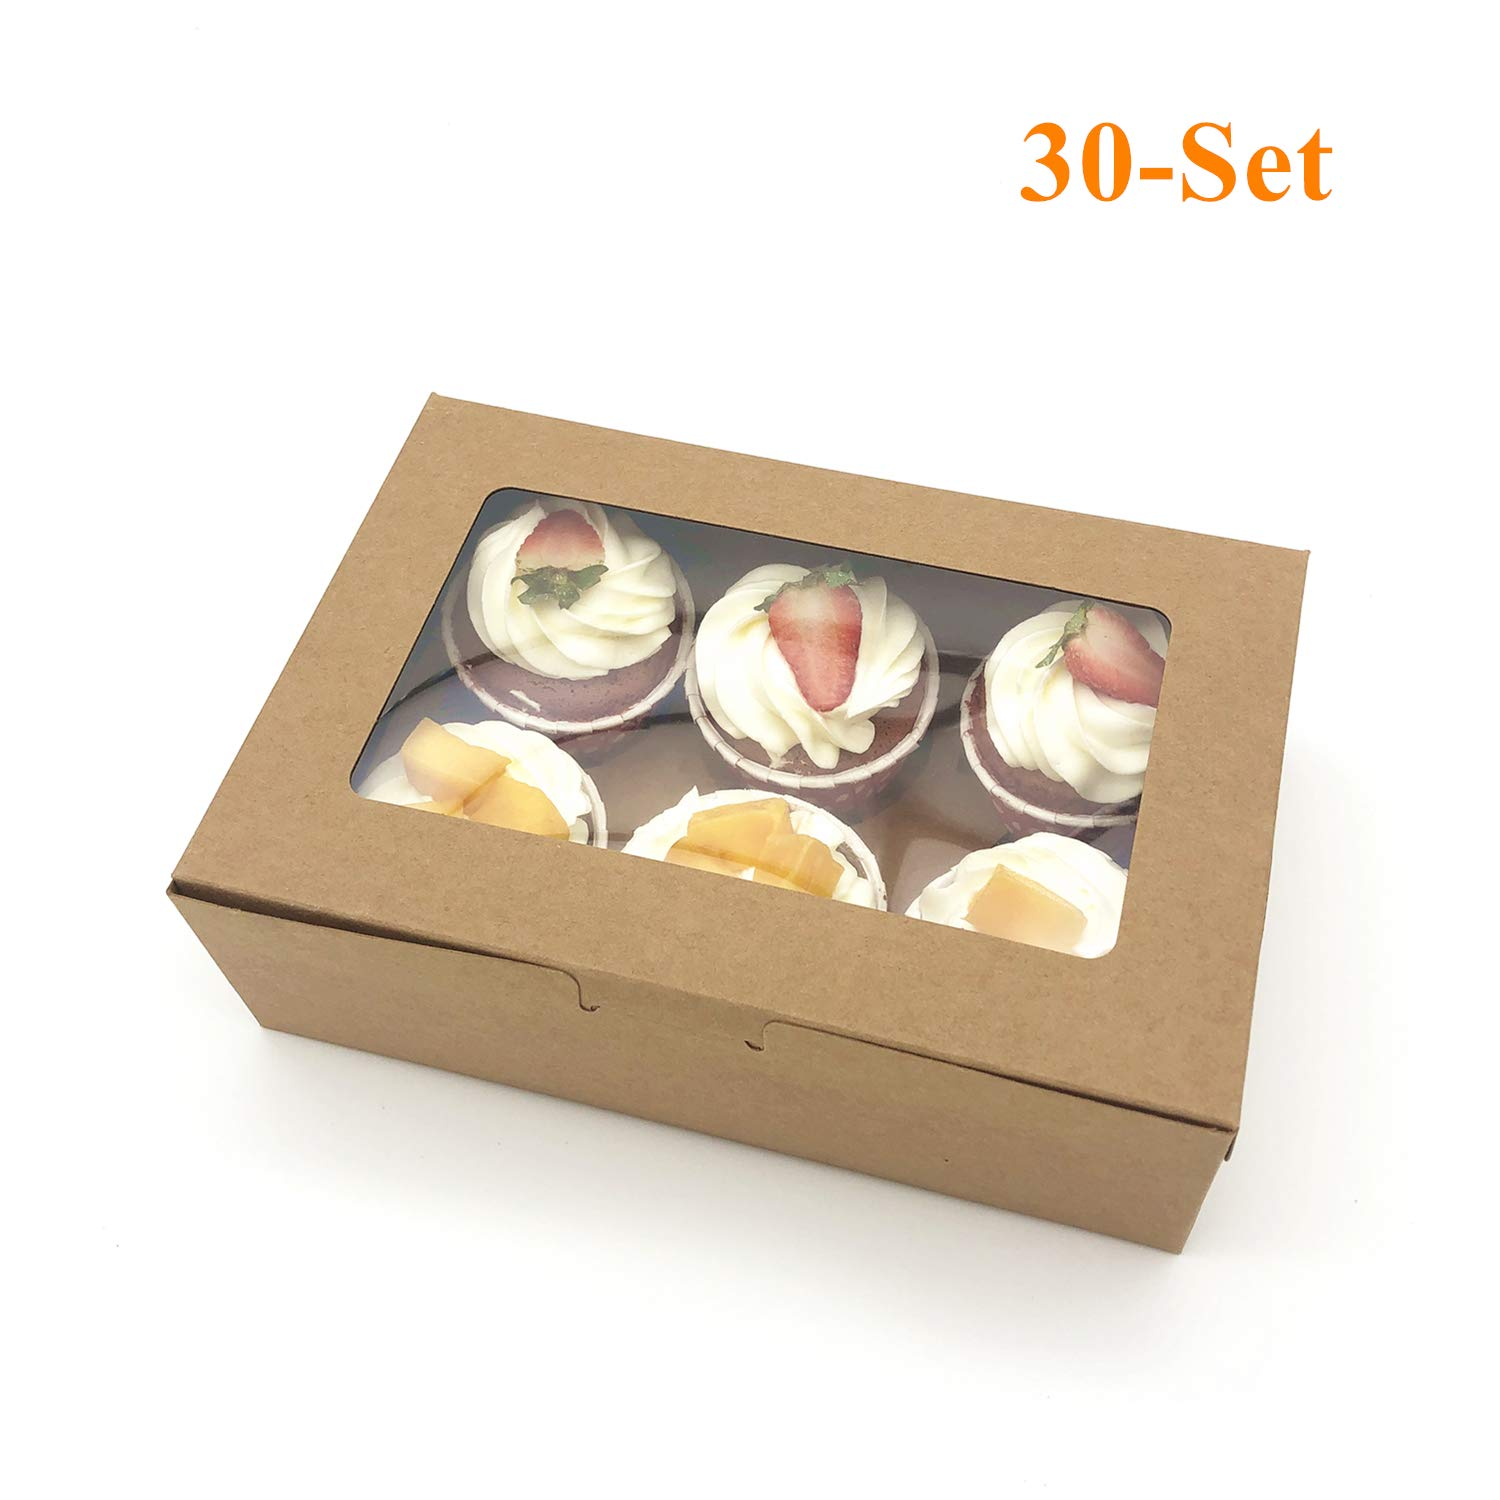 30-Set Cupcake Boxes with Inserts and Window Fits 6 Cupcakes, 9.4'' x 6.3'' x 3'', Brown Food Grade Kraft Cookie Gift Boxes, Treat Boxes for Cookies, Bakeries, Muffins and Pastries by Aglahome (Image #1)